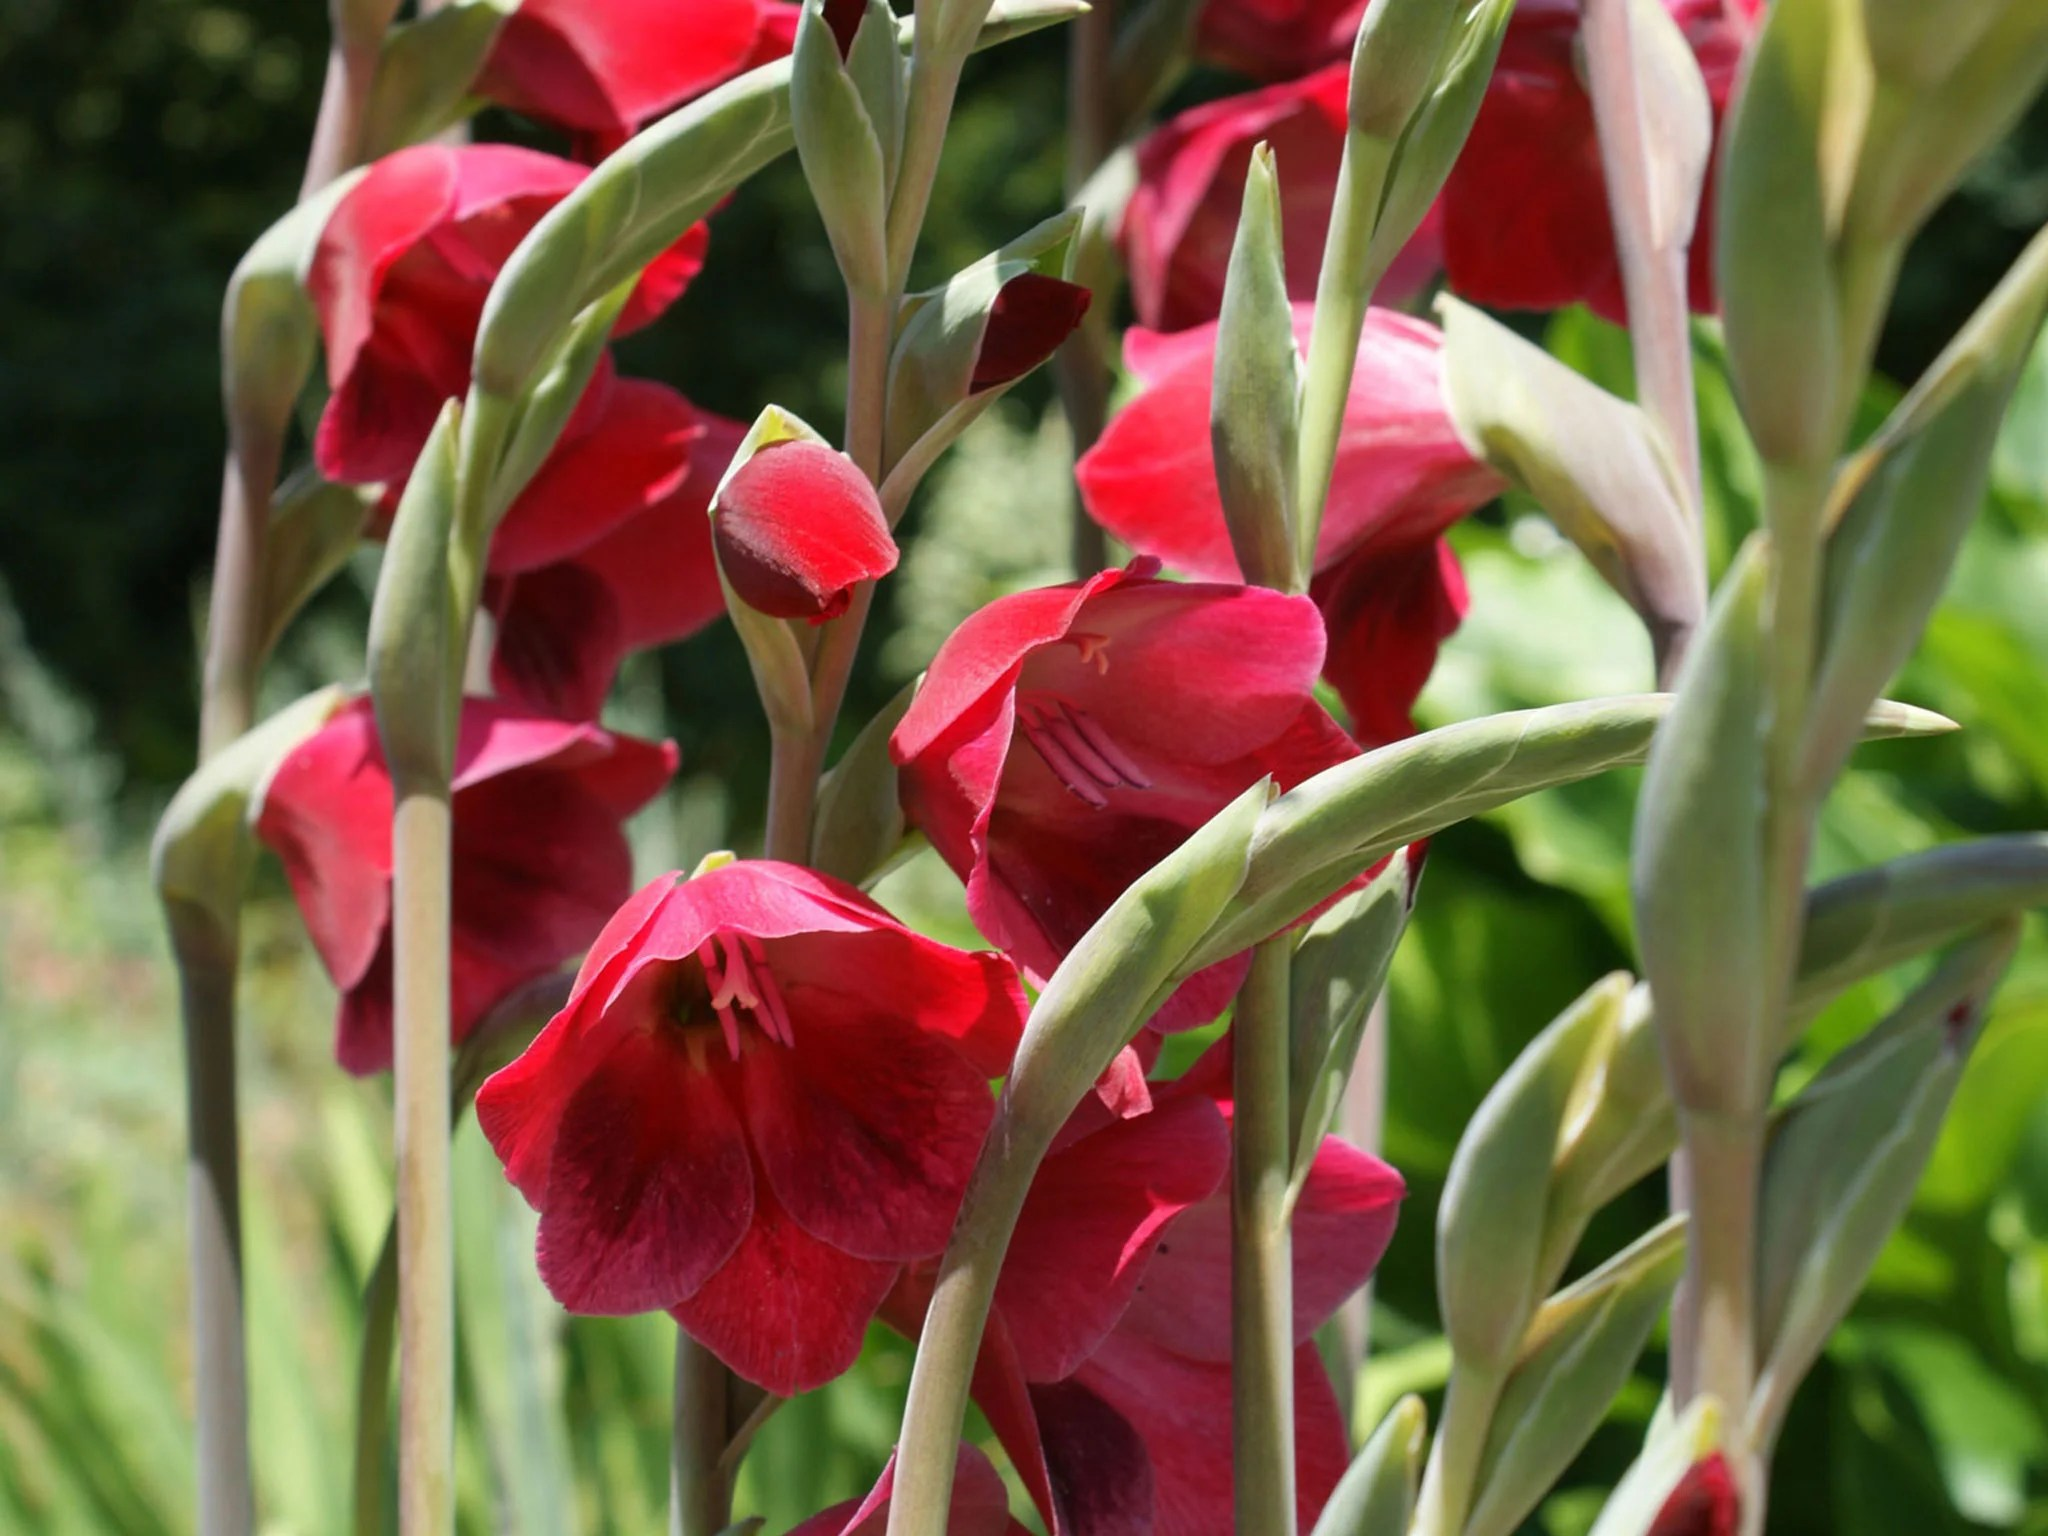 Bos Gladiolen Gladioli Are Among The Best Bulbs To Plant Now For Flowers